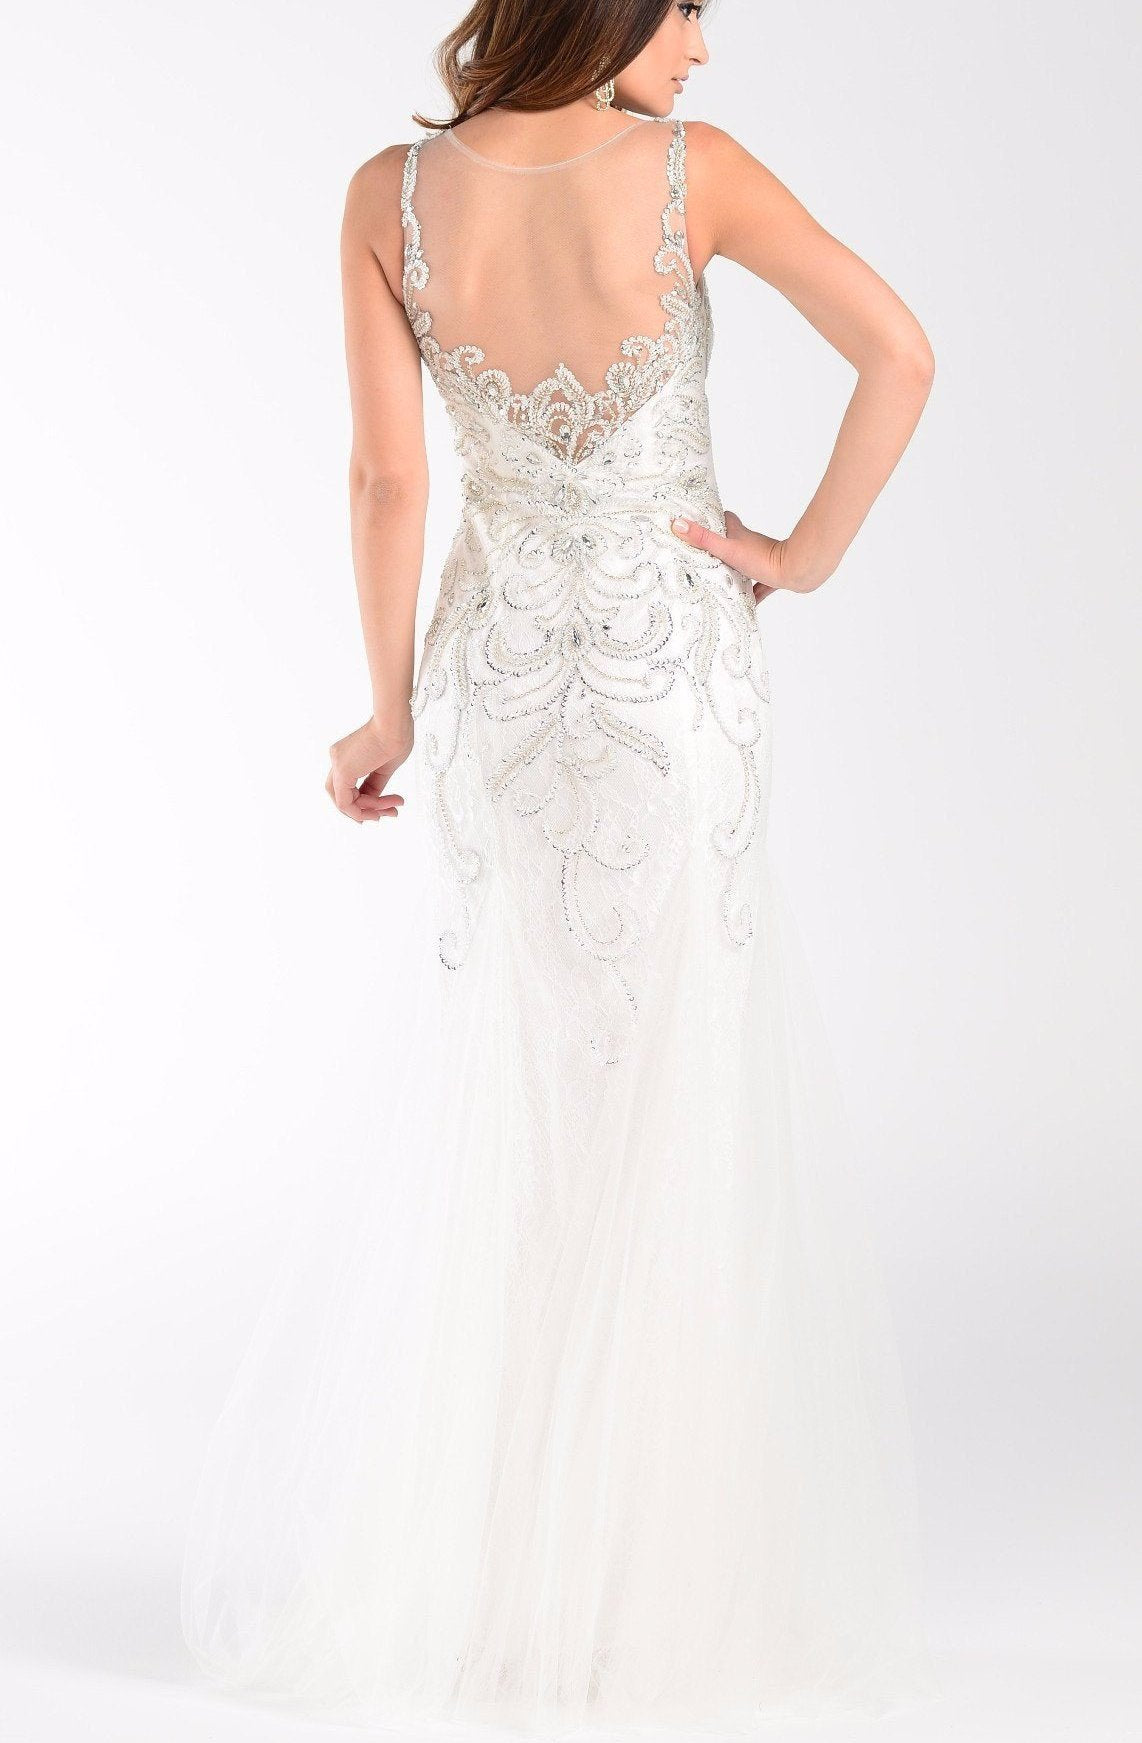 Mermaid wedding dress with tulle skirt 101-7322wht – Simply Fab Dress